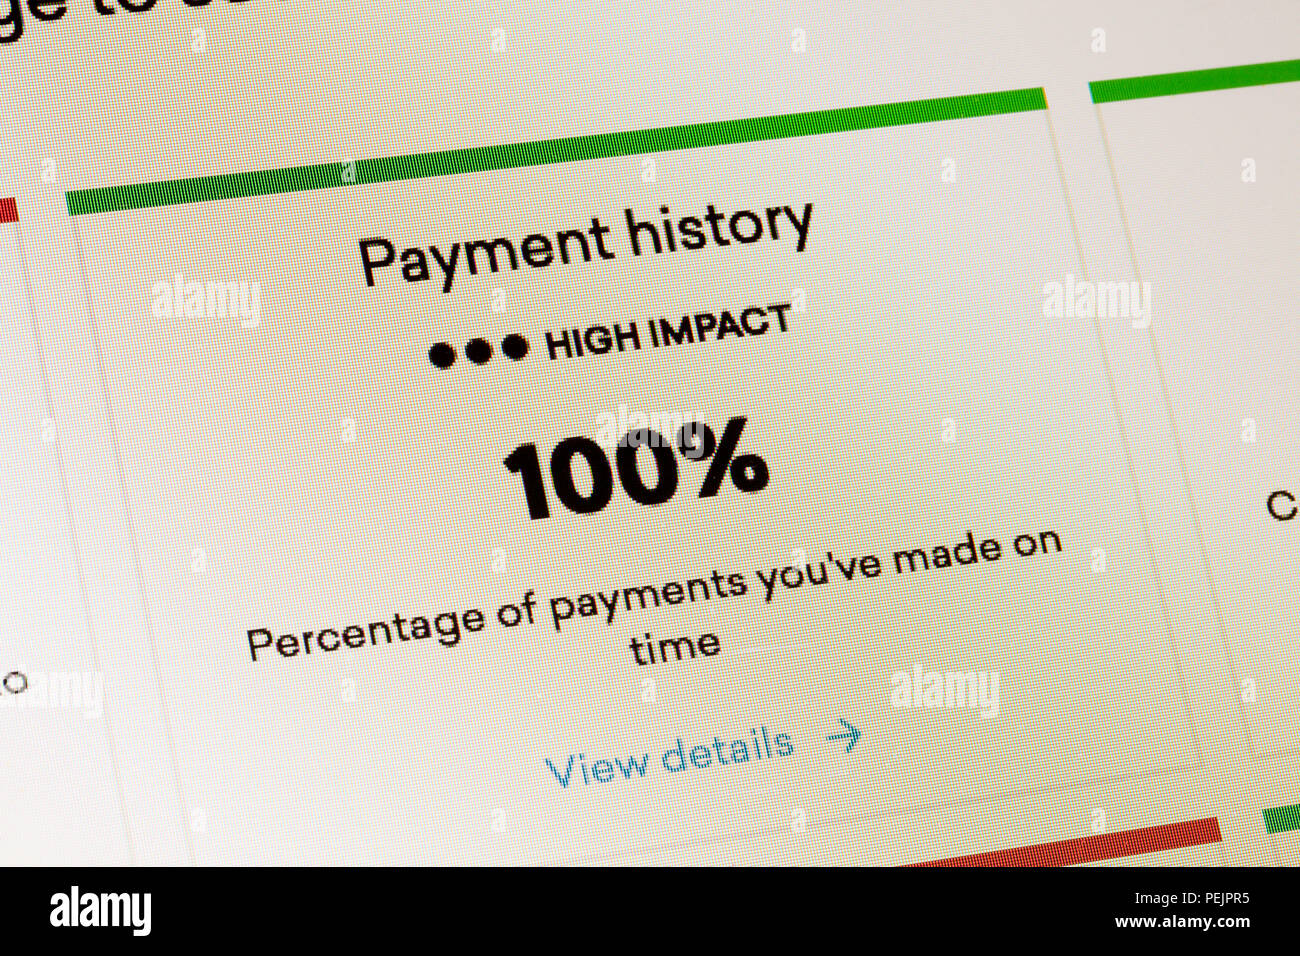 Payment history impact on FICO score (credit score rating) - USA - Stock Image